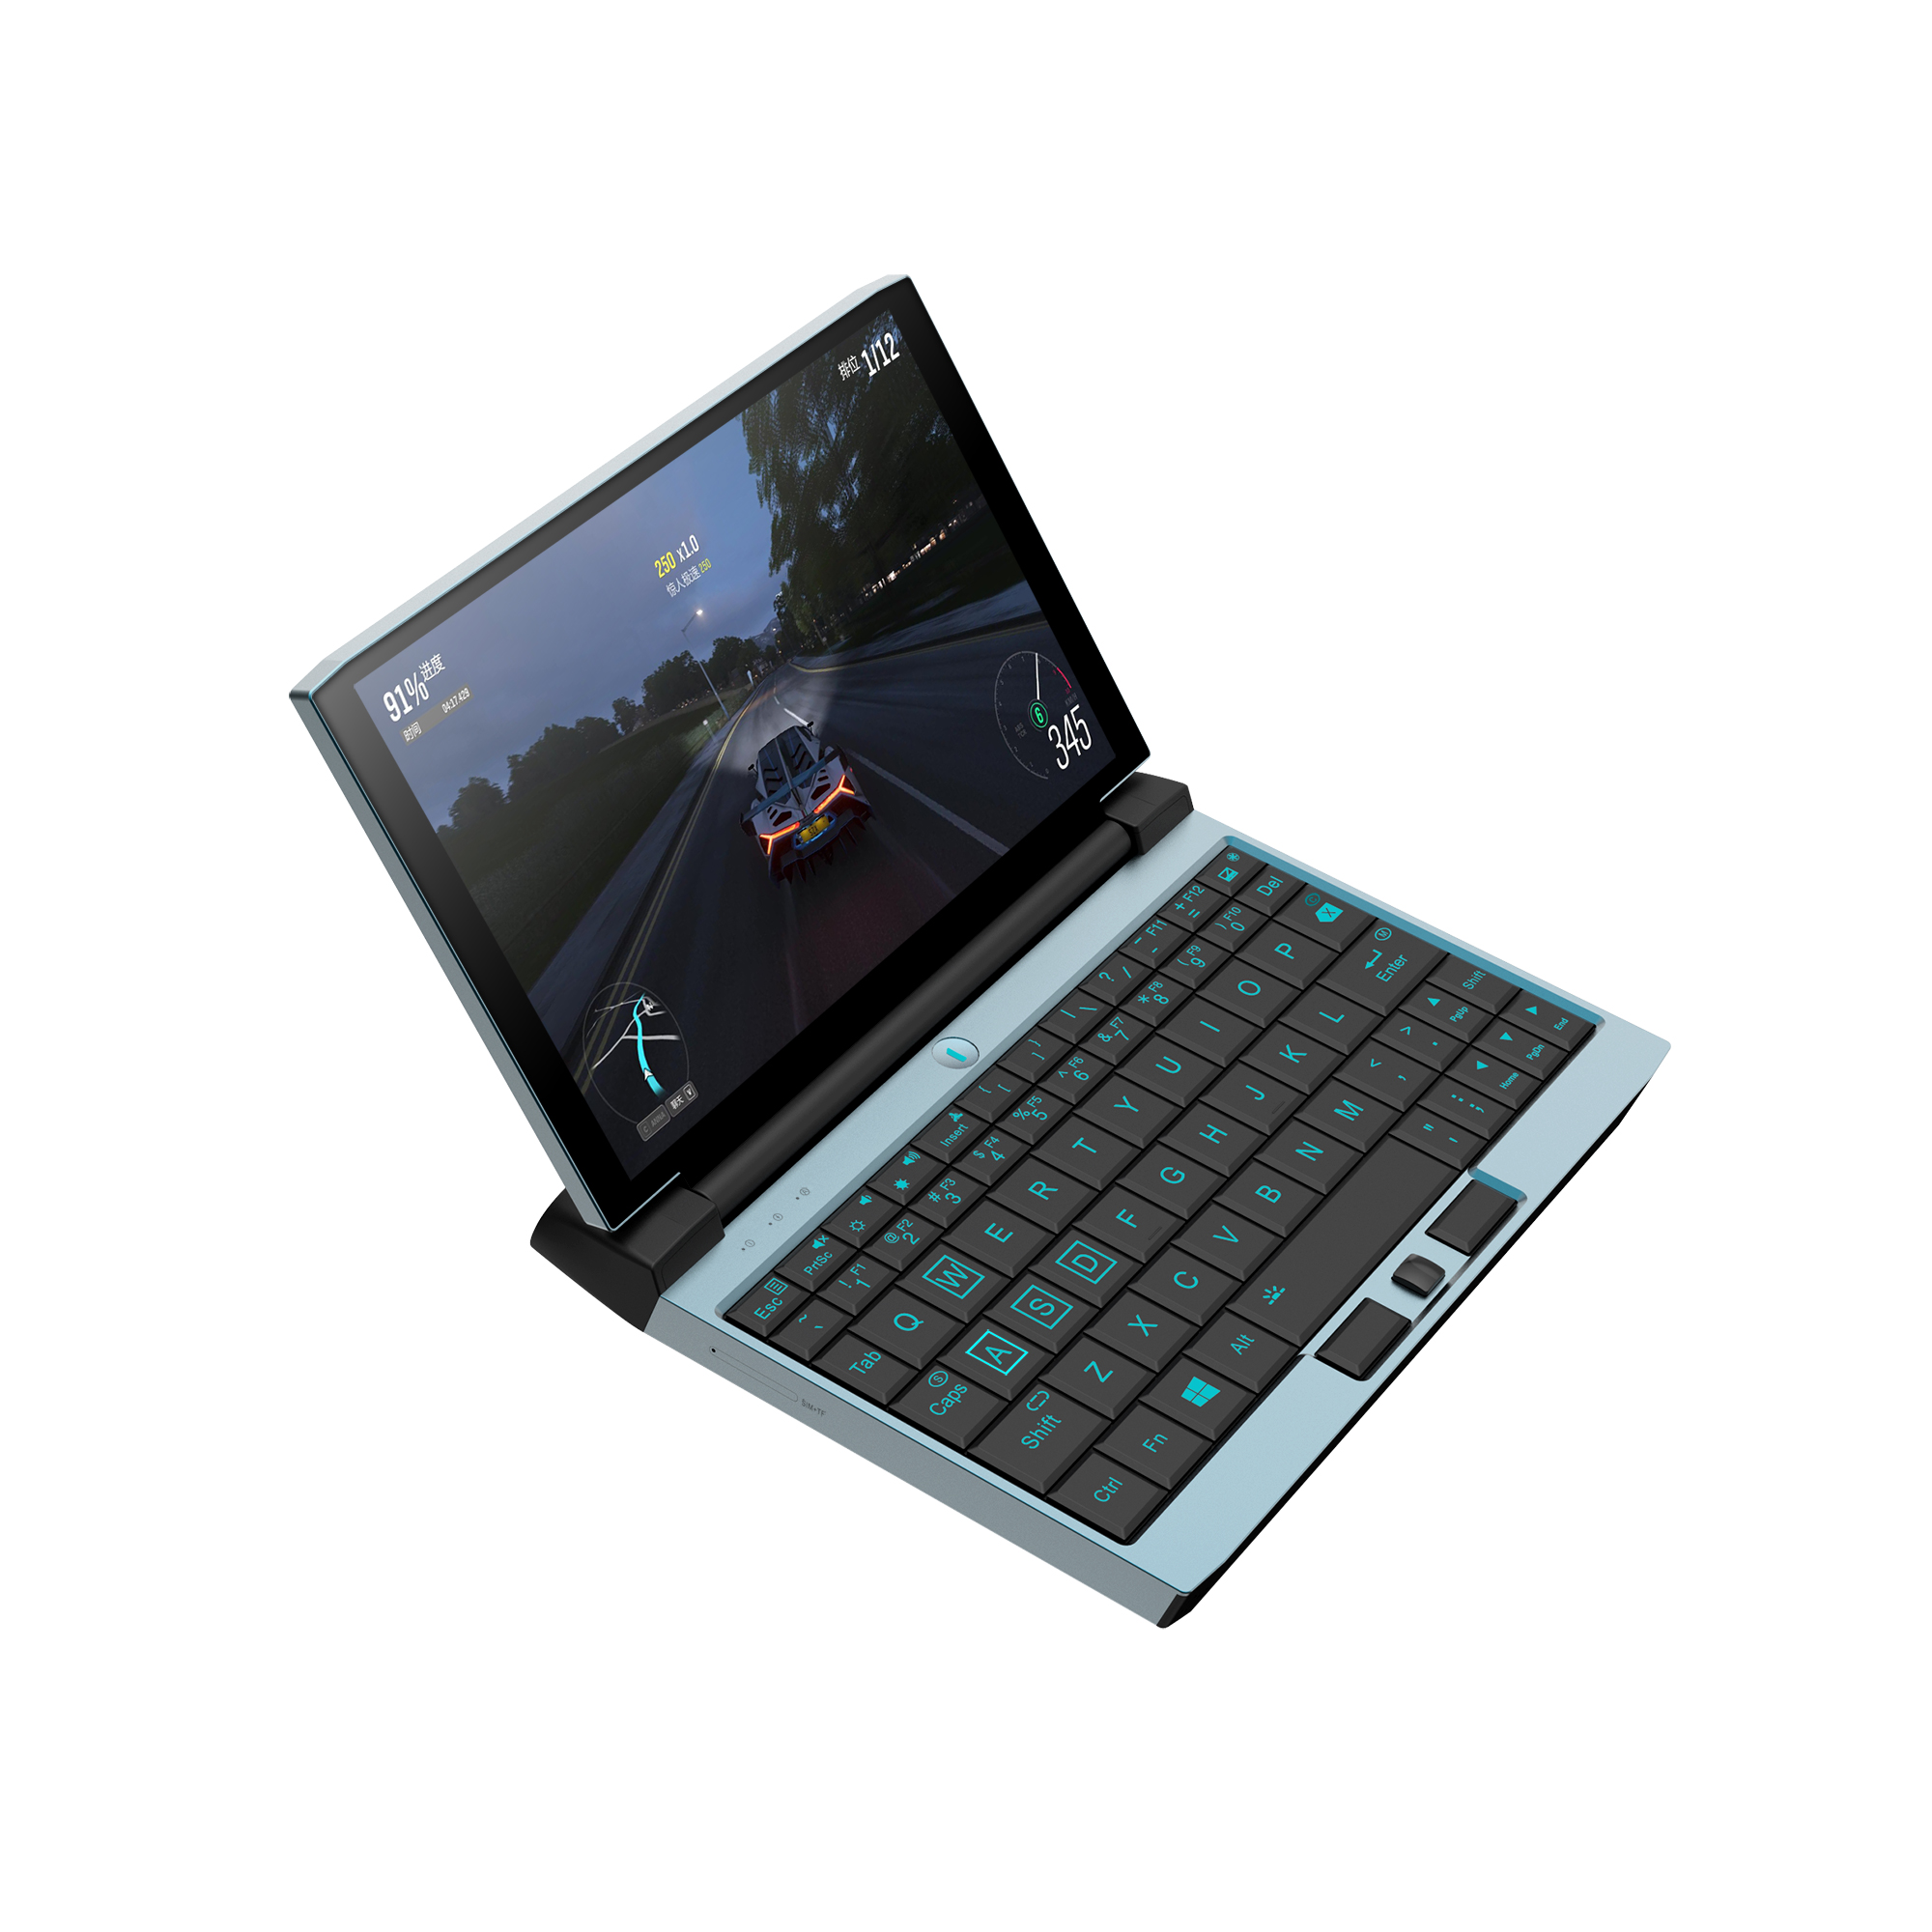 cheapest Gaming Laptop Core I7 8G 1T HDD GF940M 15 6-Inch Independent Display Card 2GB  Computer Notebook 1080p Laptop